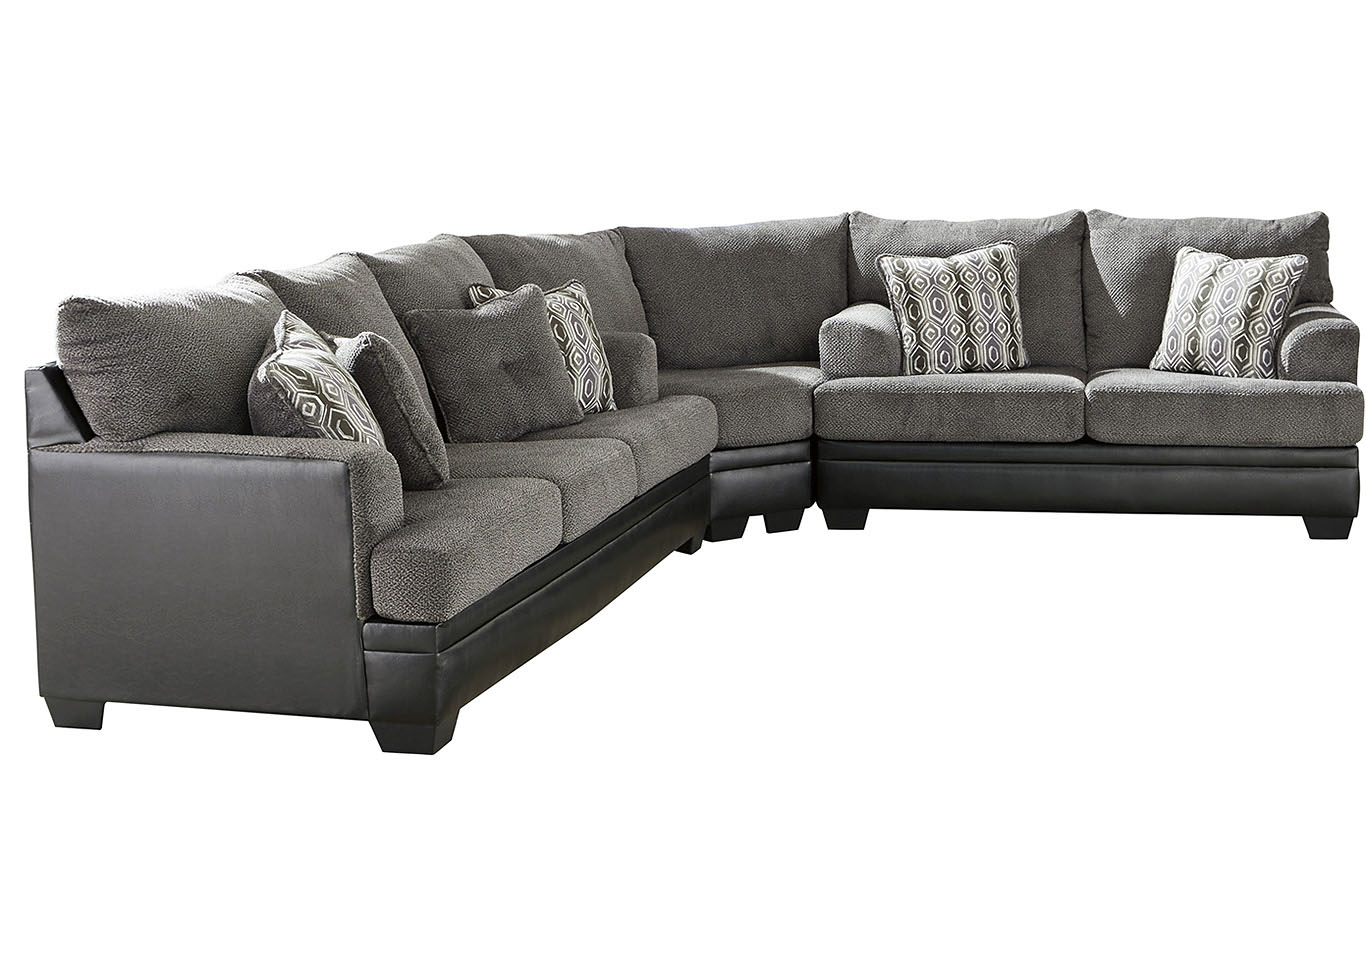 Millingar Smoke Sectional,Signature Design By Ashley